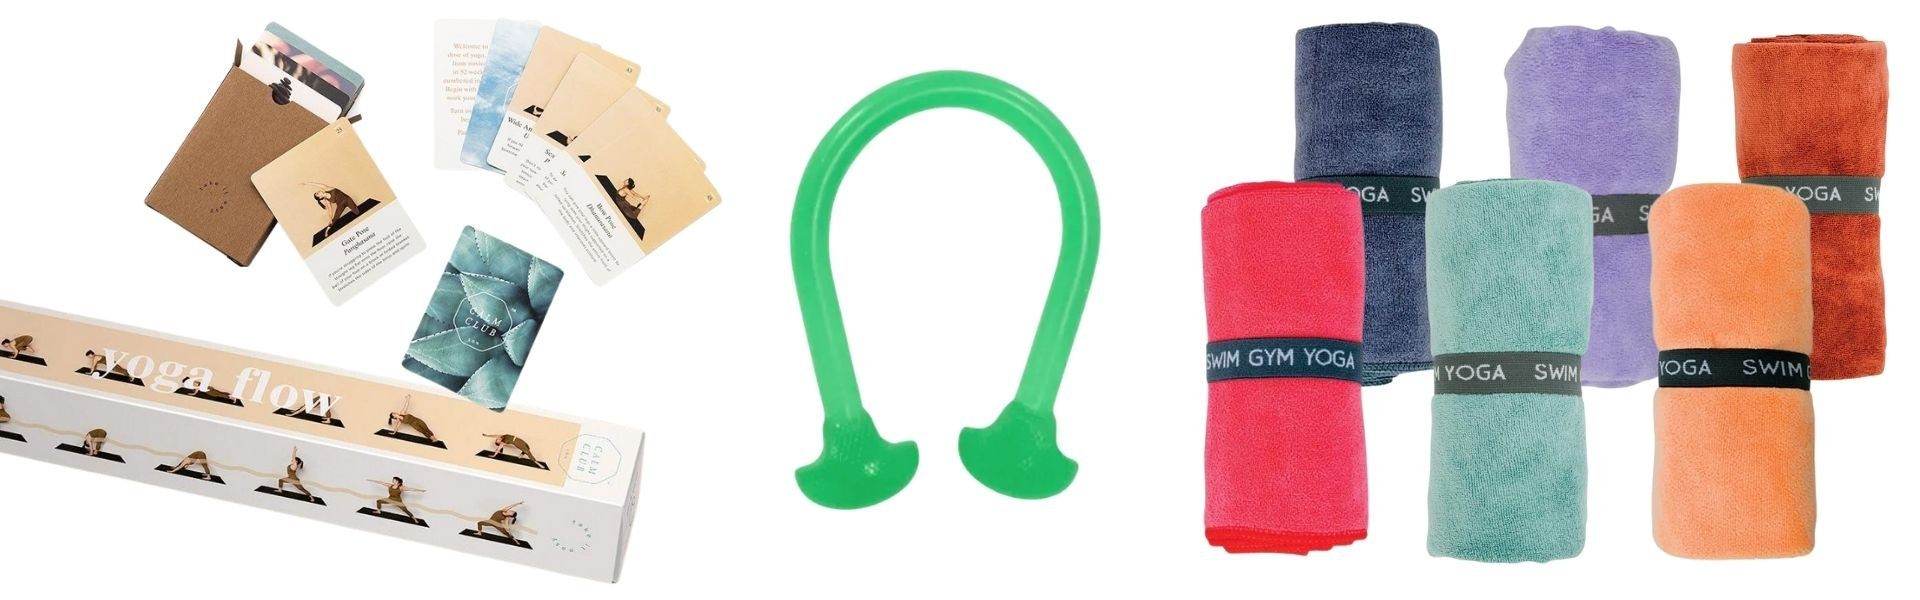 Homing Instincts yoga equipment products